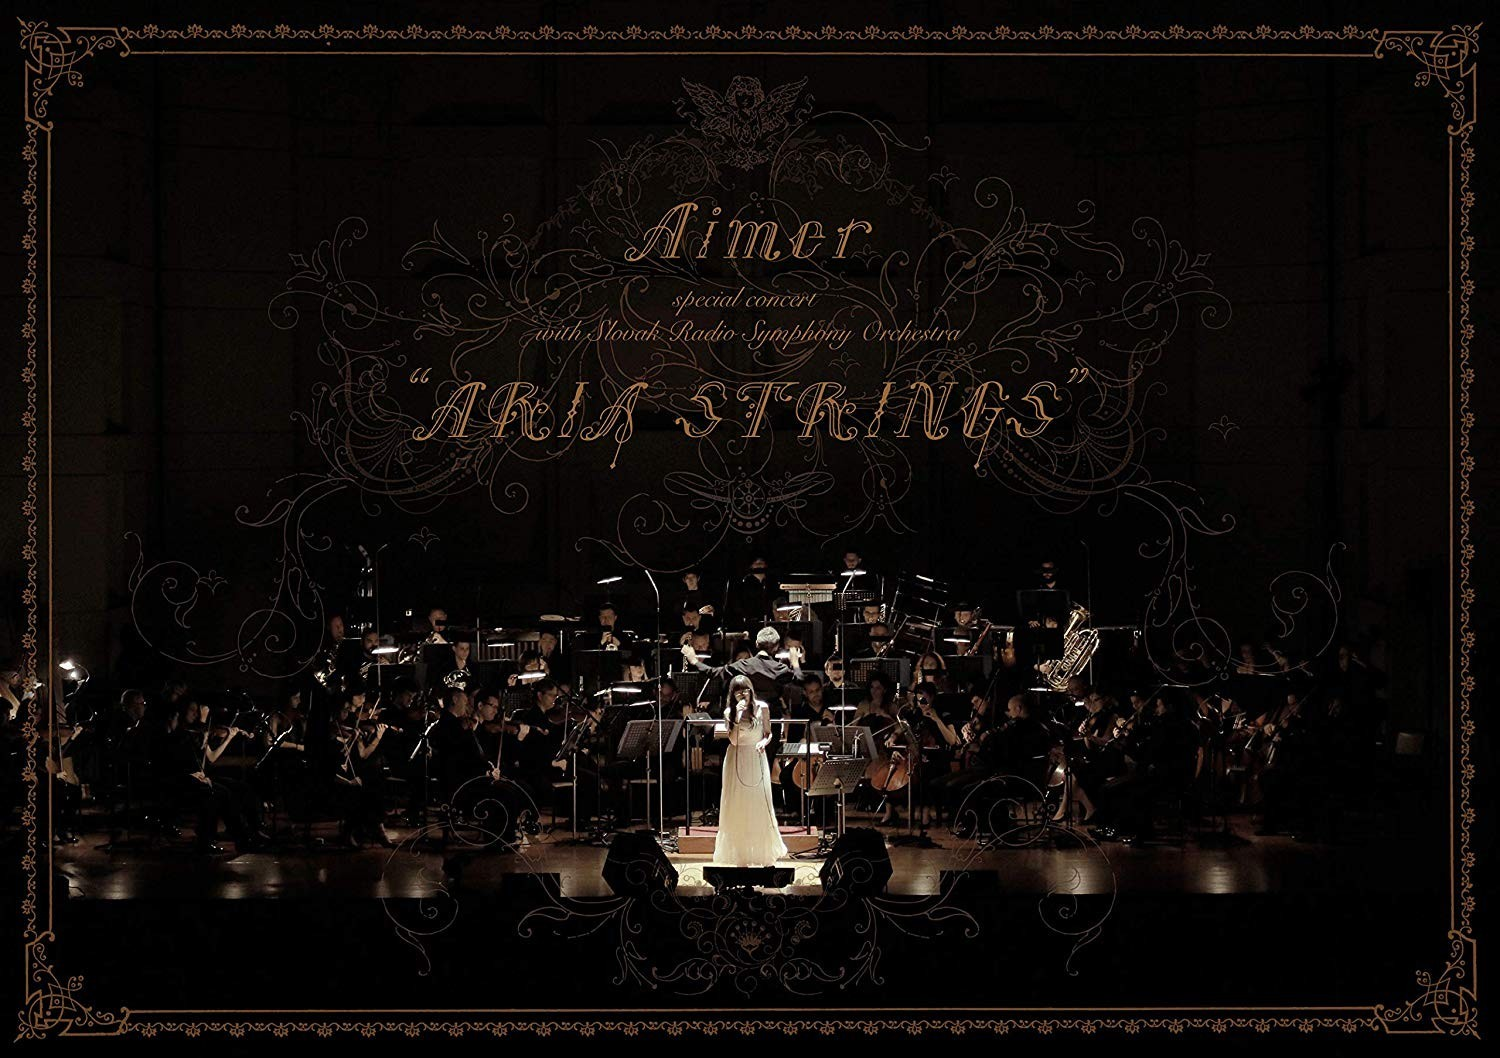 "Aimer – Aimer special concert with スロヴァキア国立放送交響楽団 ""ARIA STRINGS"" [FLAC + MP3 320 + Blu-Ray ISO] [2018.10.31]"